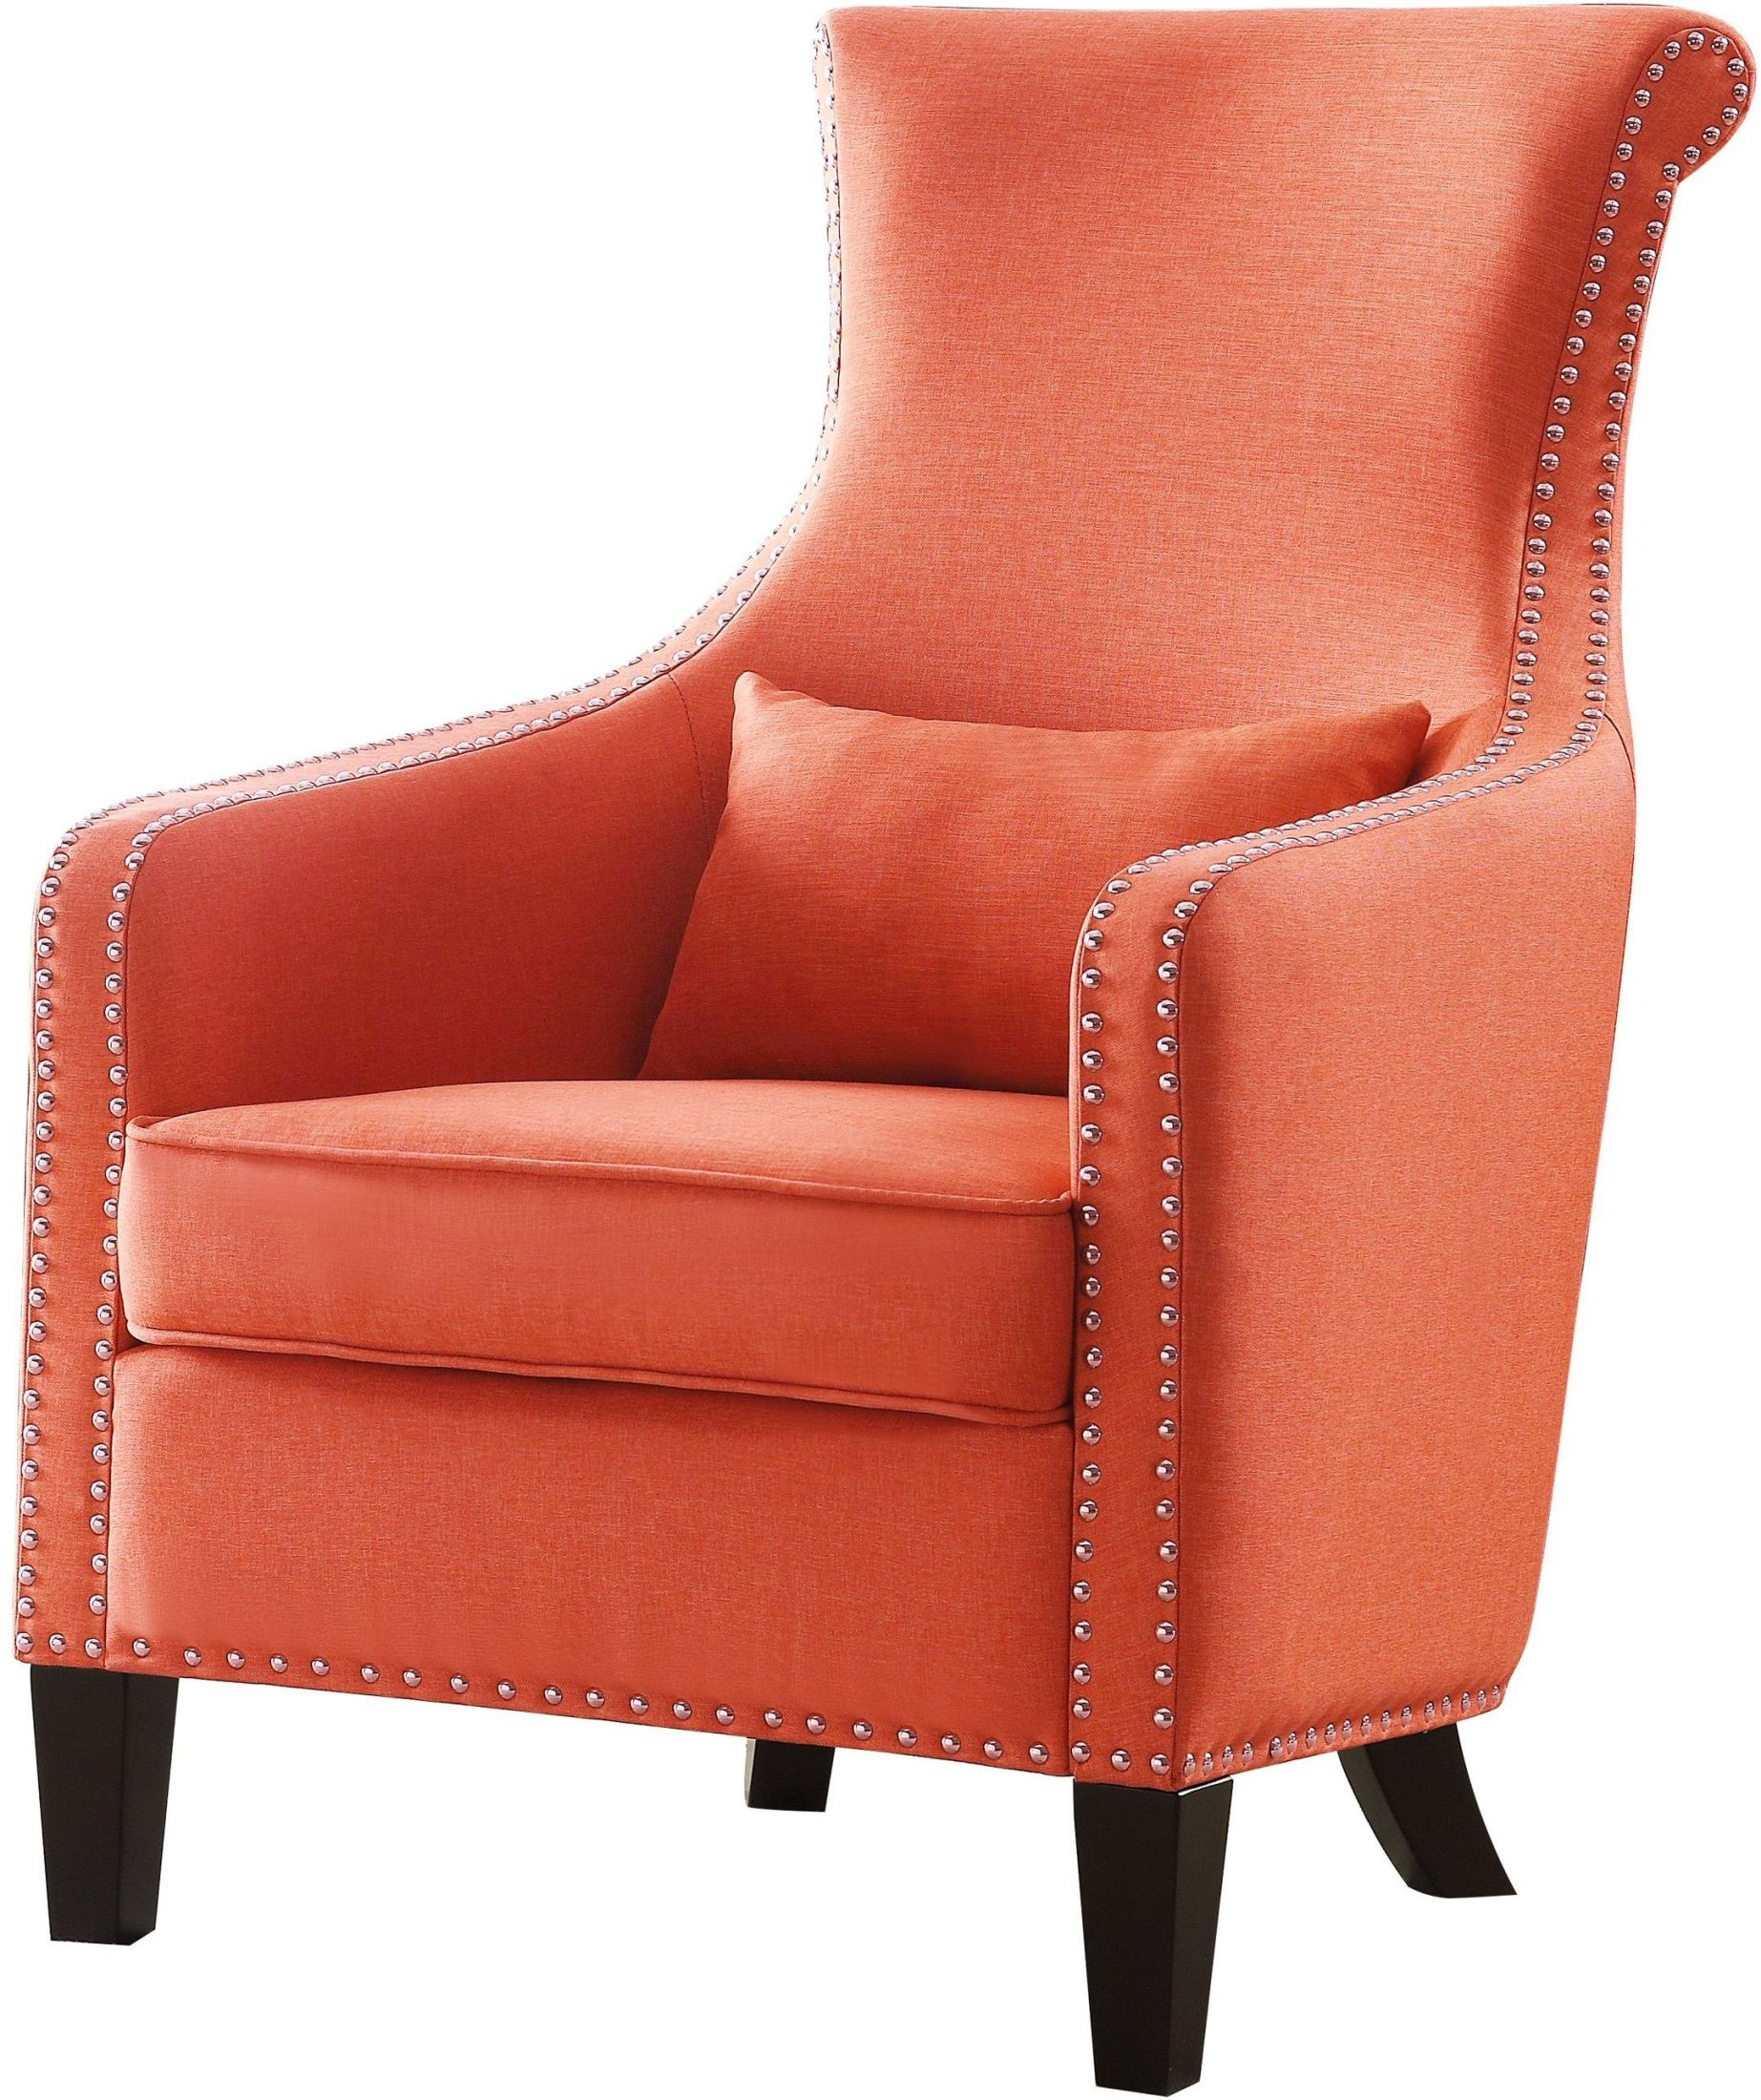 Orange Accent Chairs Arles Orange Accent Chair From Homelegance Coleman Furniture